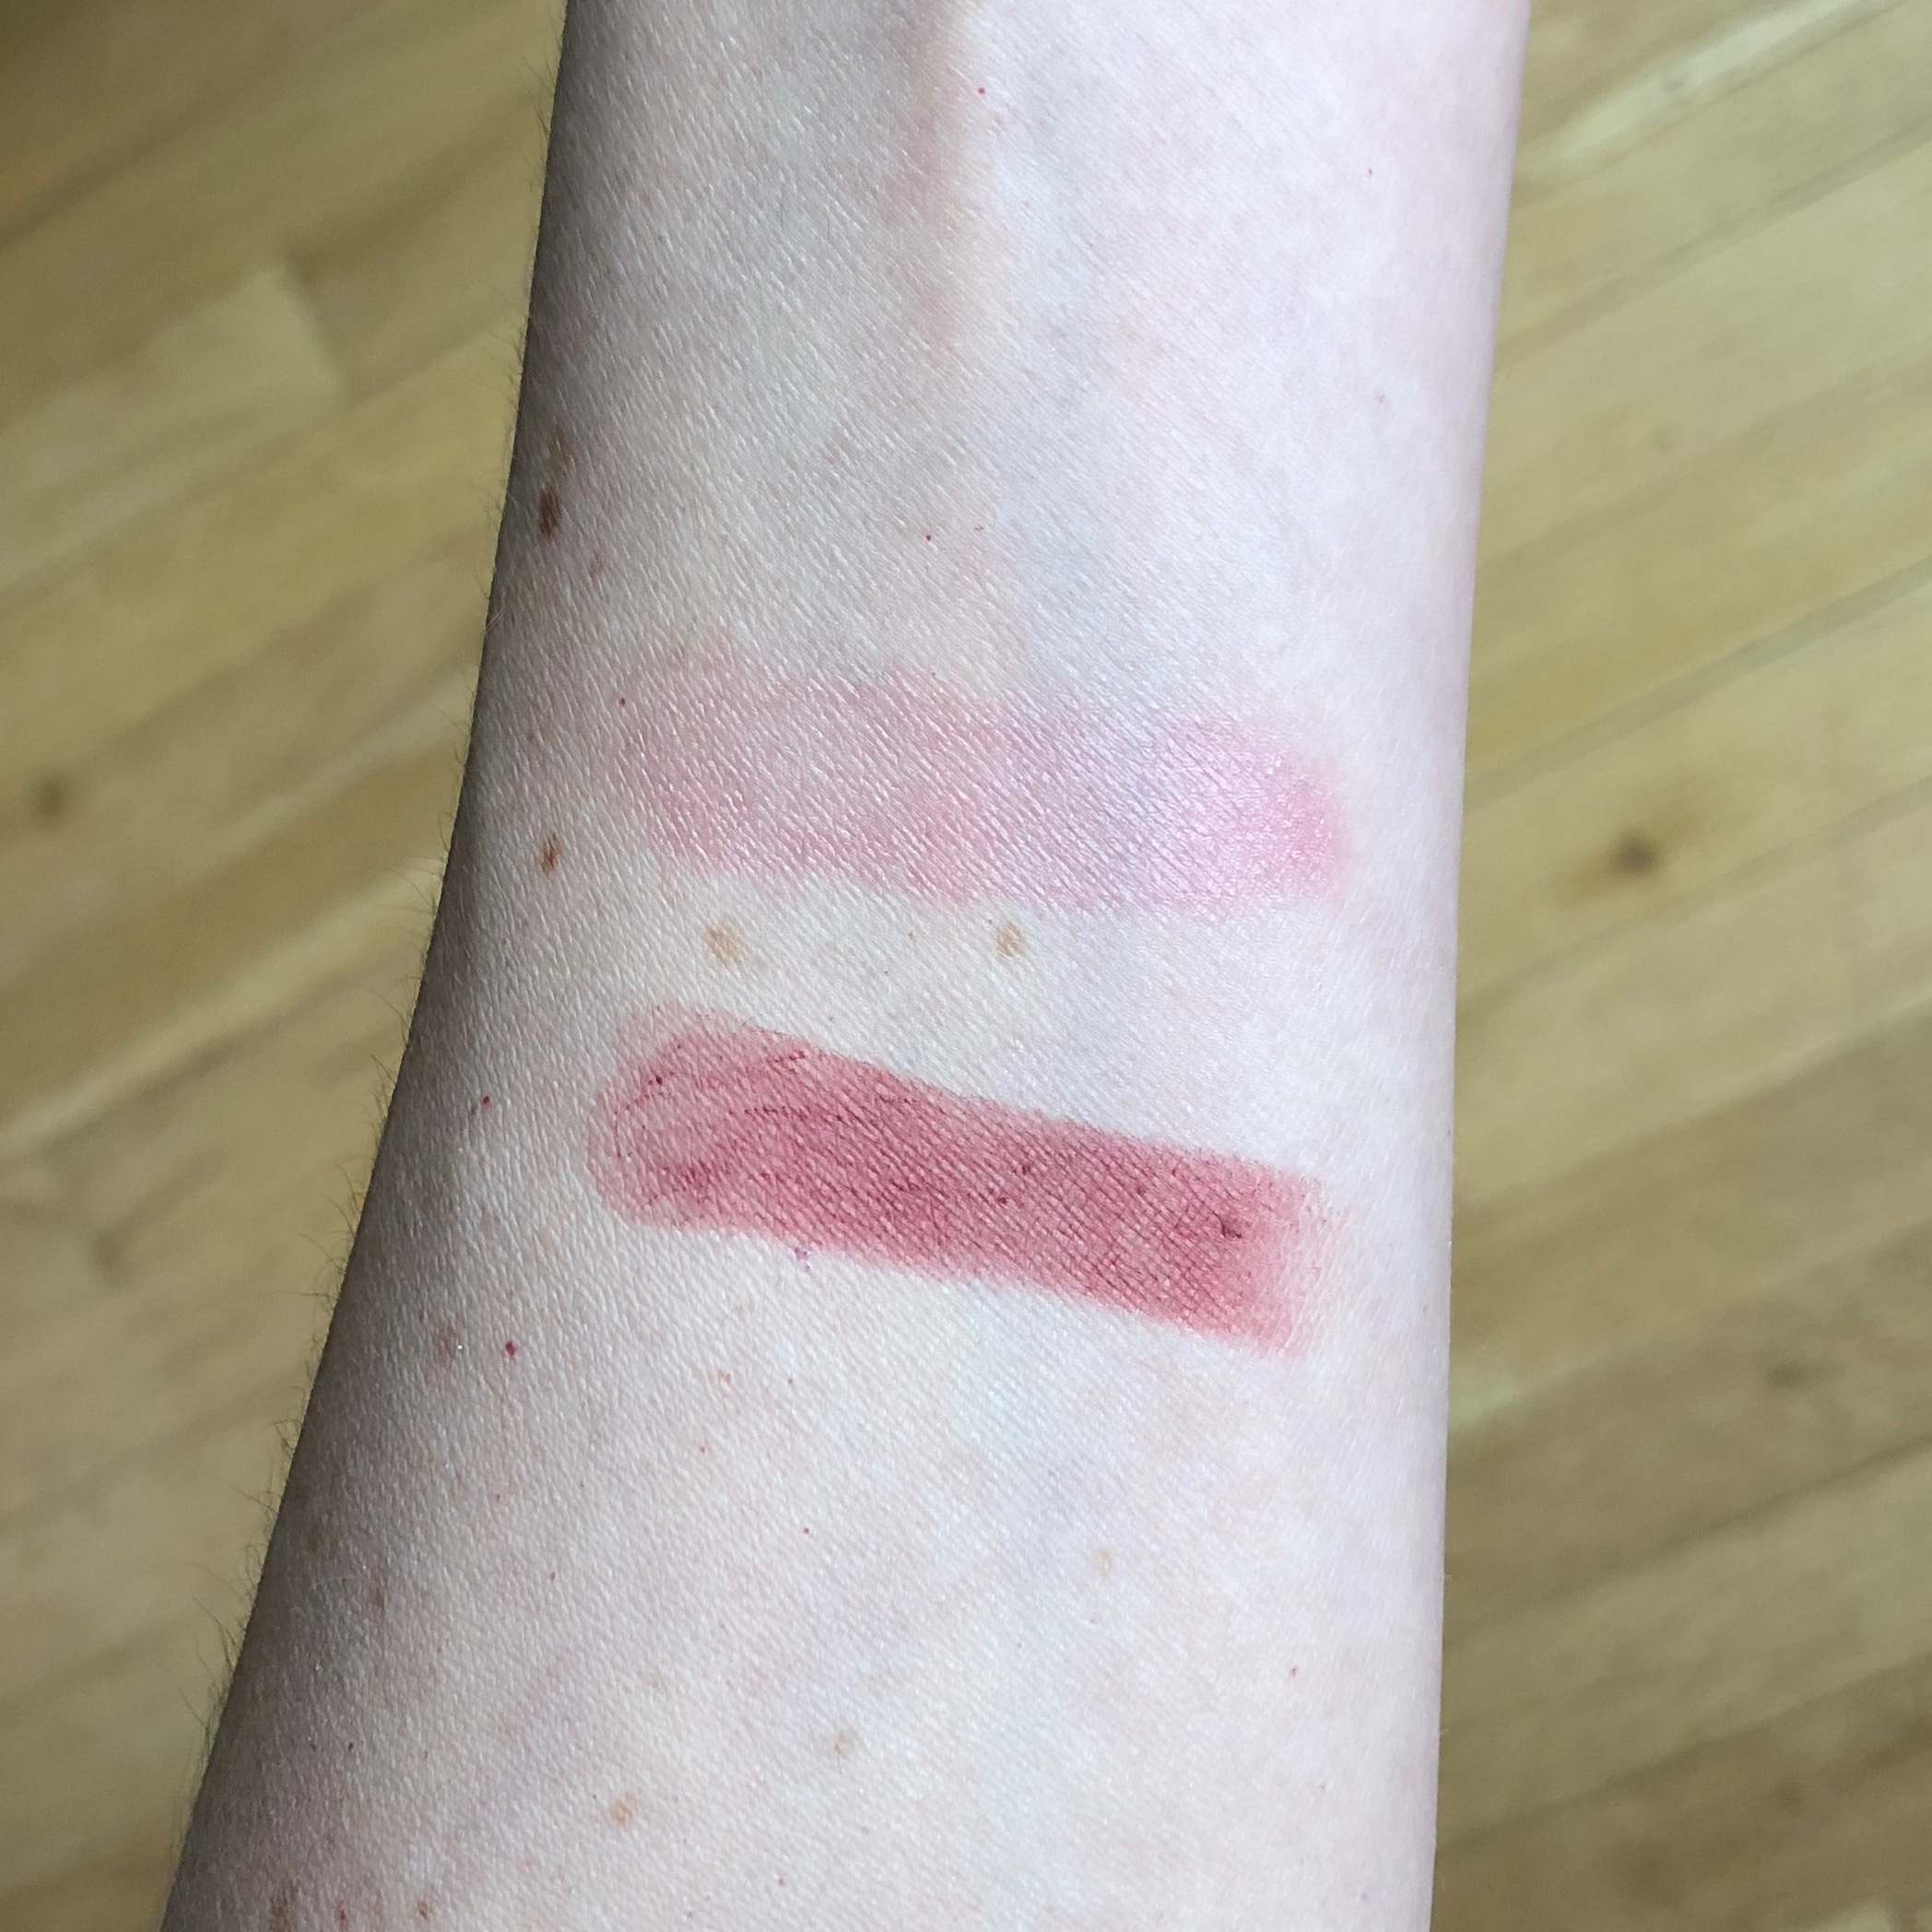 Lipstick Comparison: Glossier Generation G vs. ColourPop Blotted Lip ...